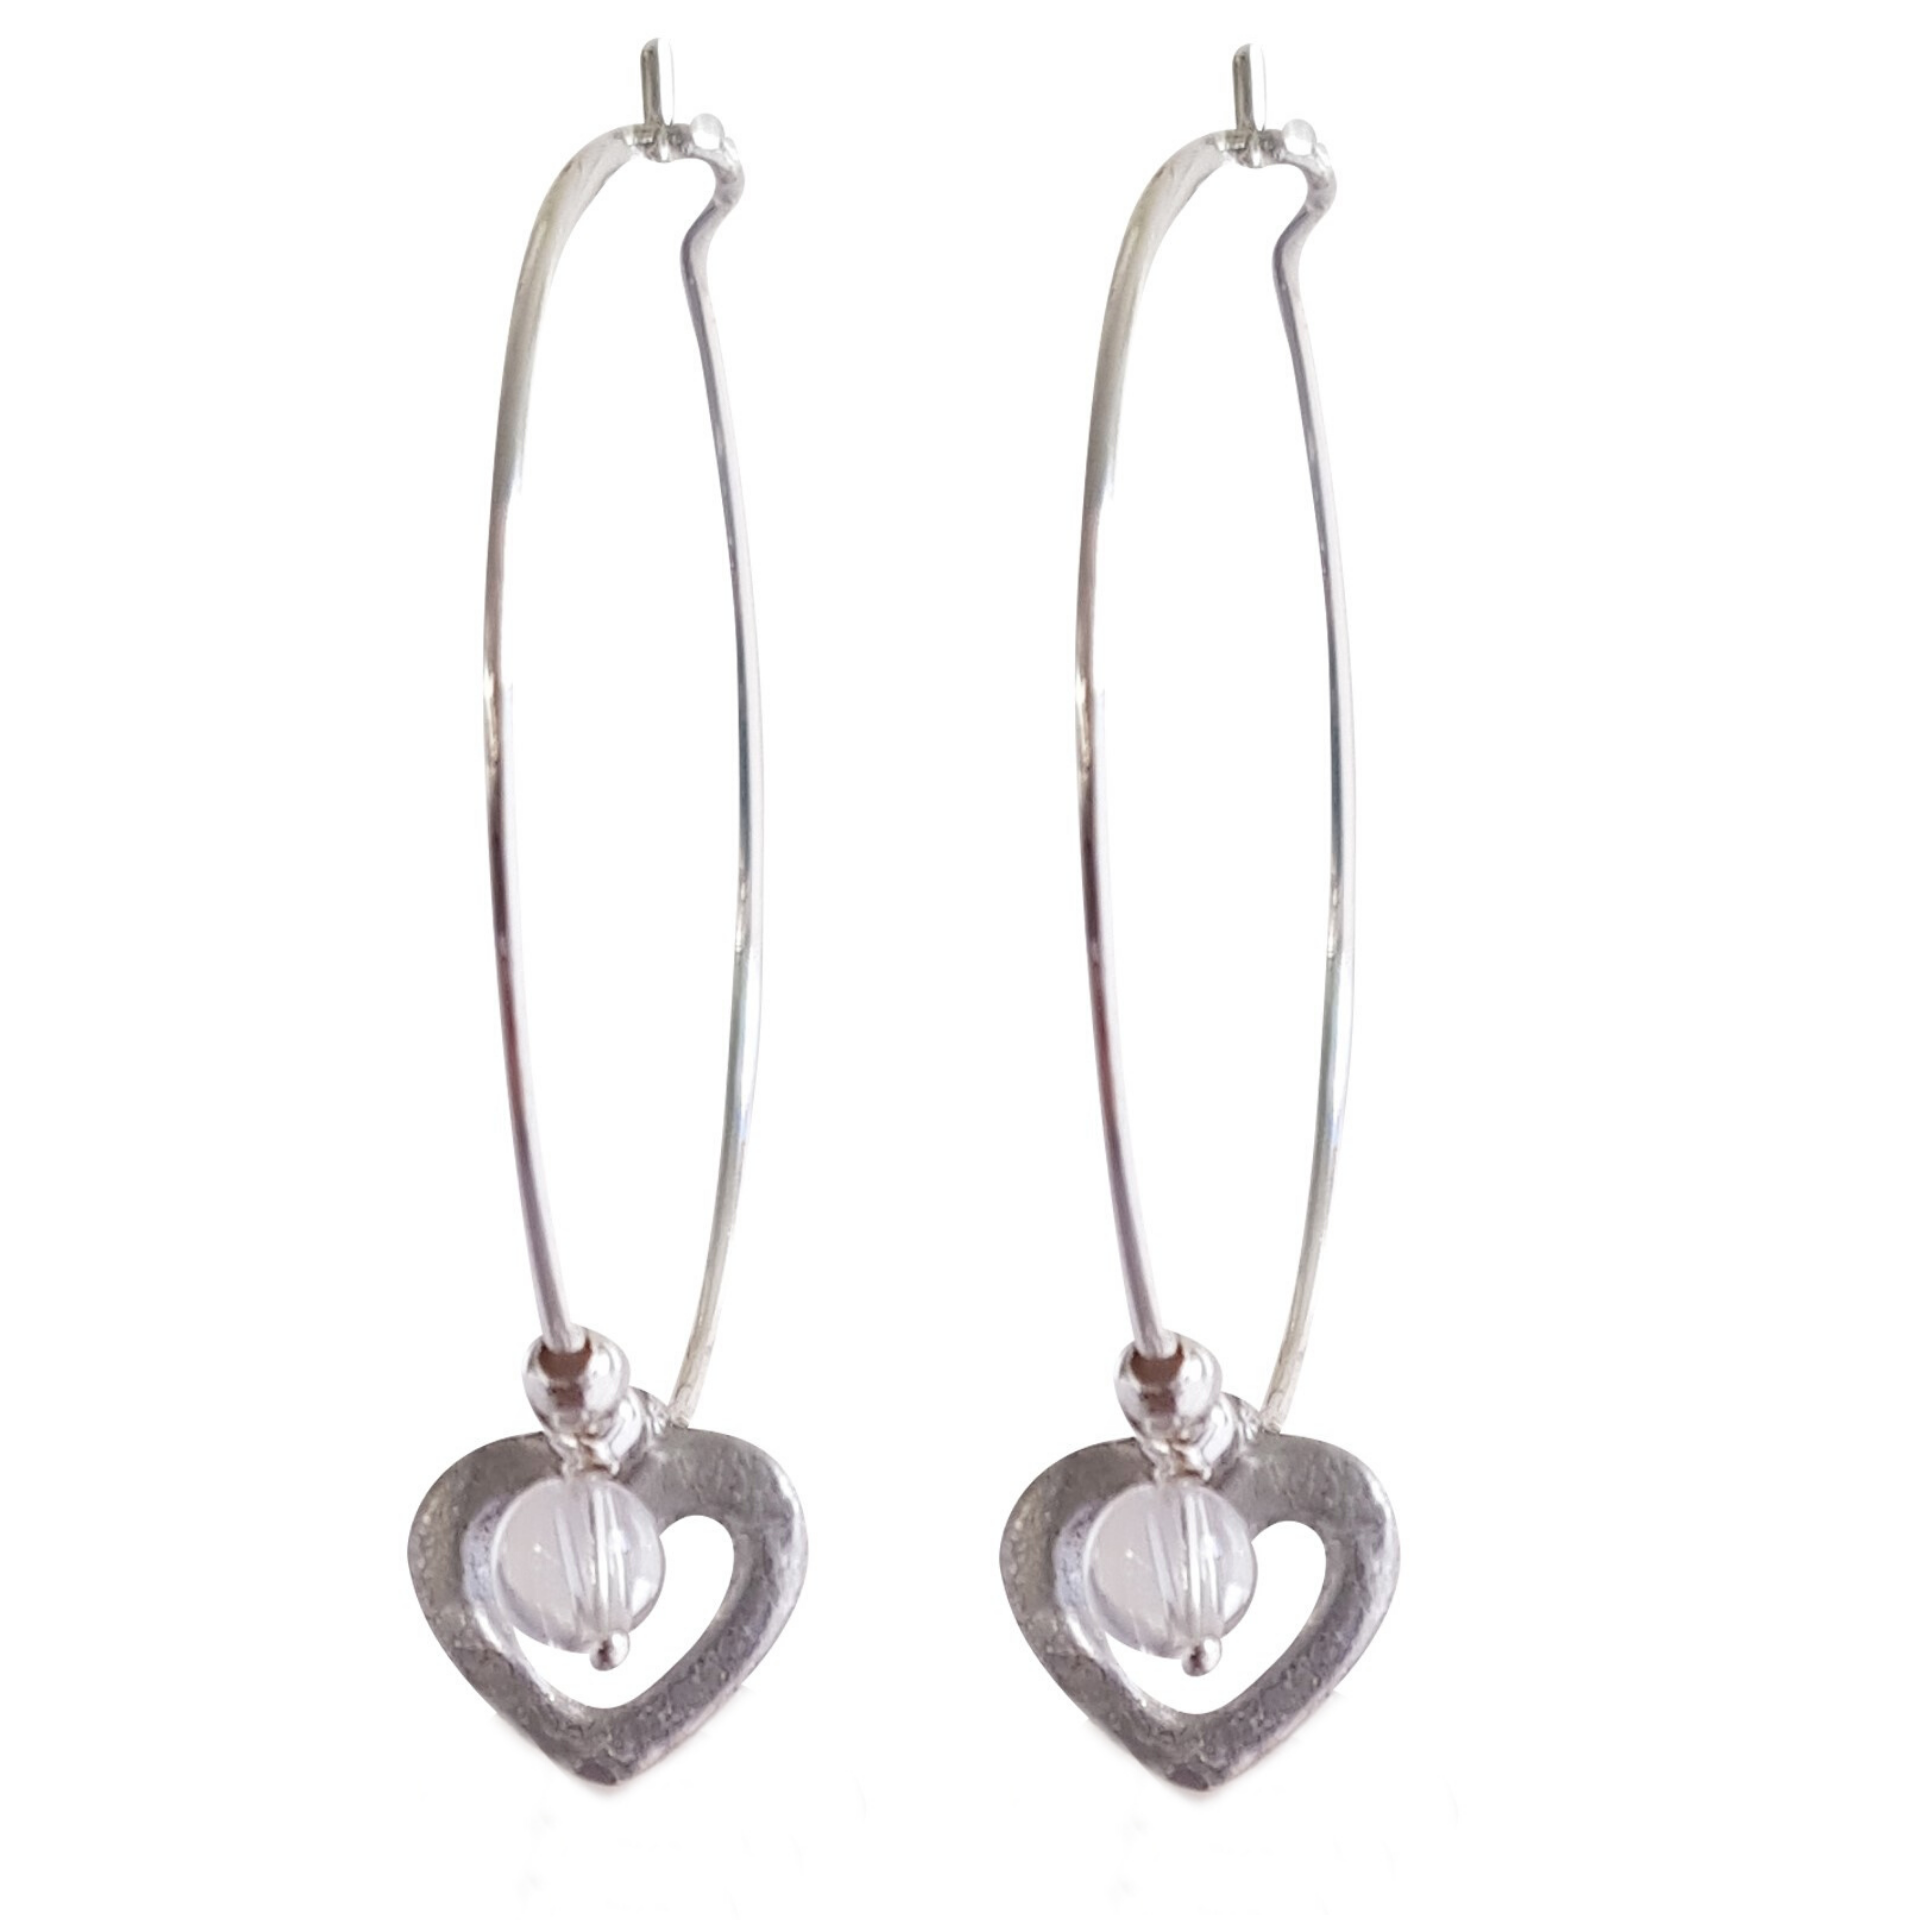 LOVEbomb Hoop and Charm Earrings on Sterling Silver Hooks